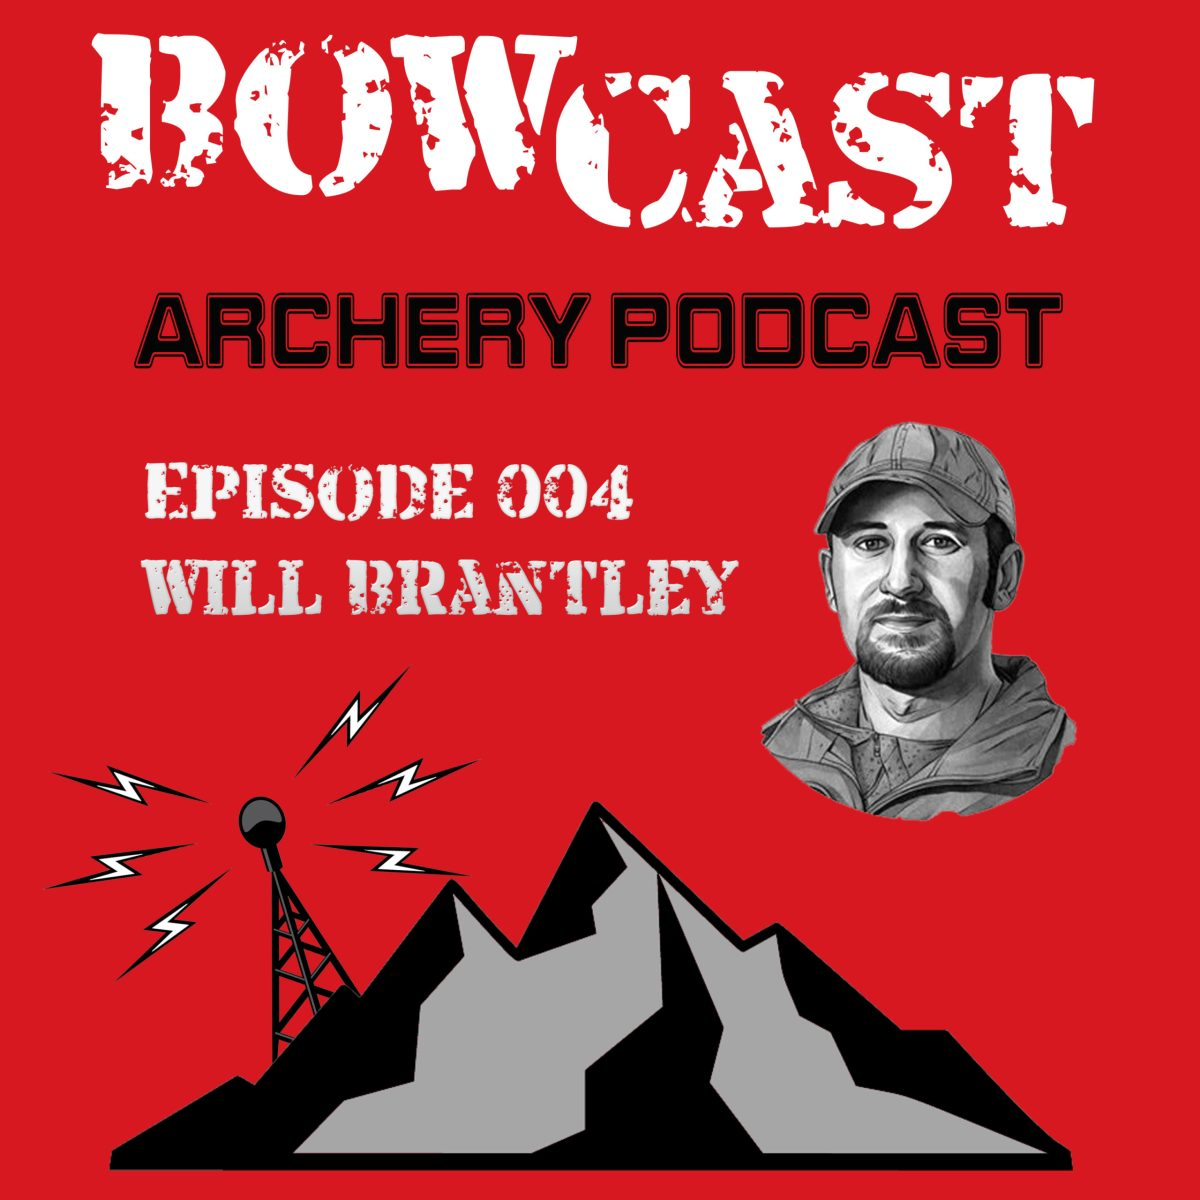 Tips for Choosing and Purchasing a New Bow with Will Brantley